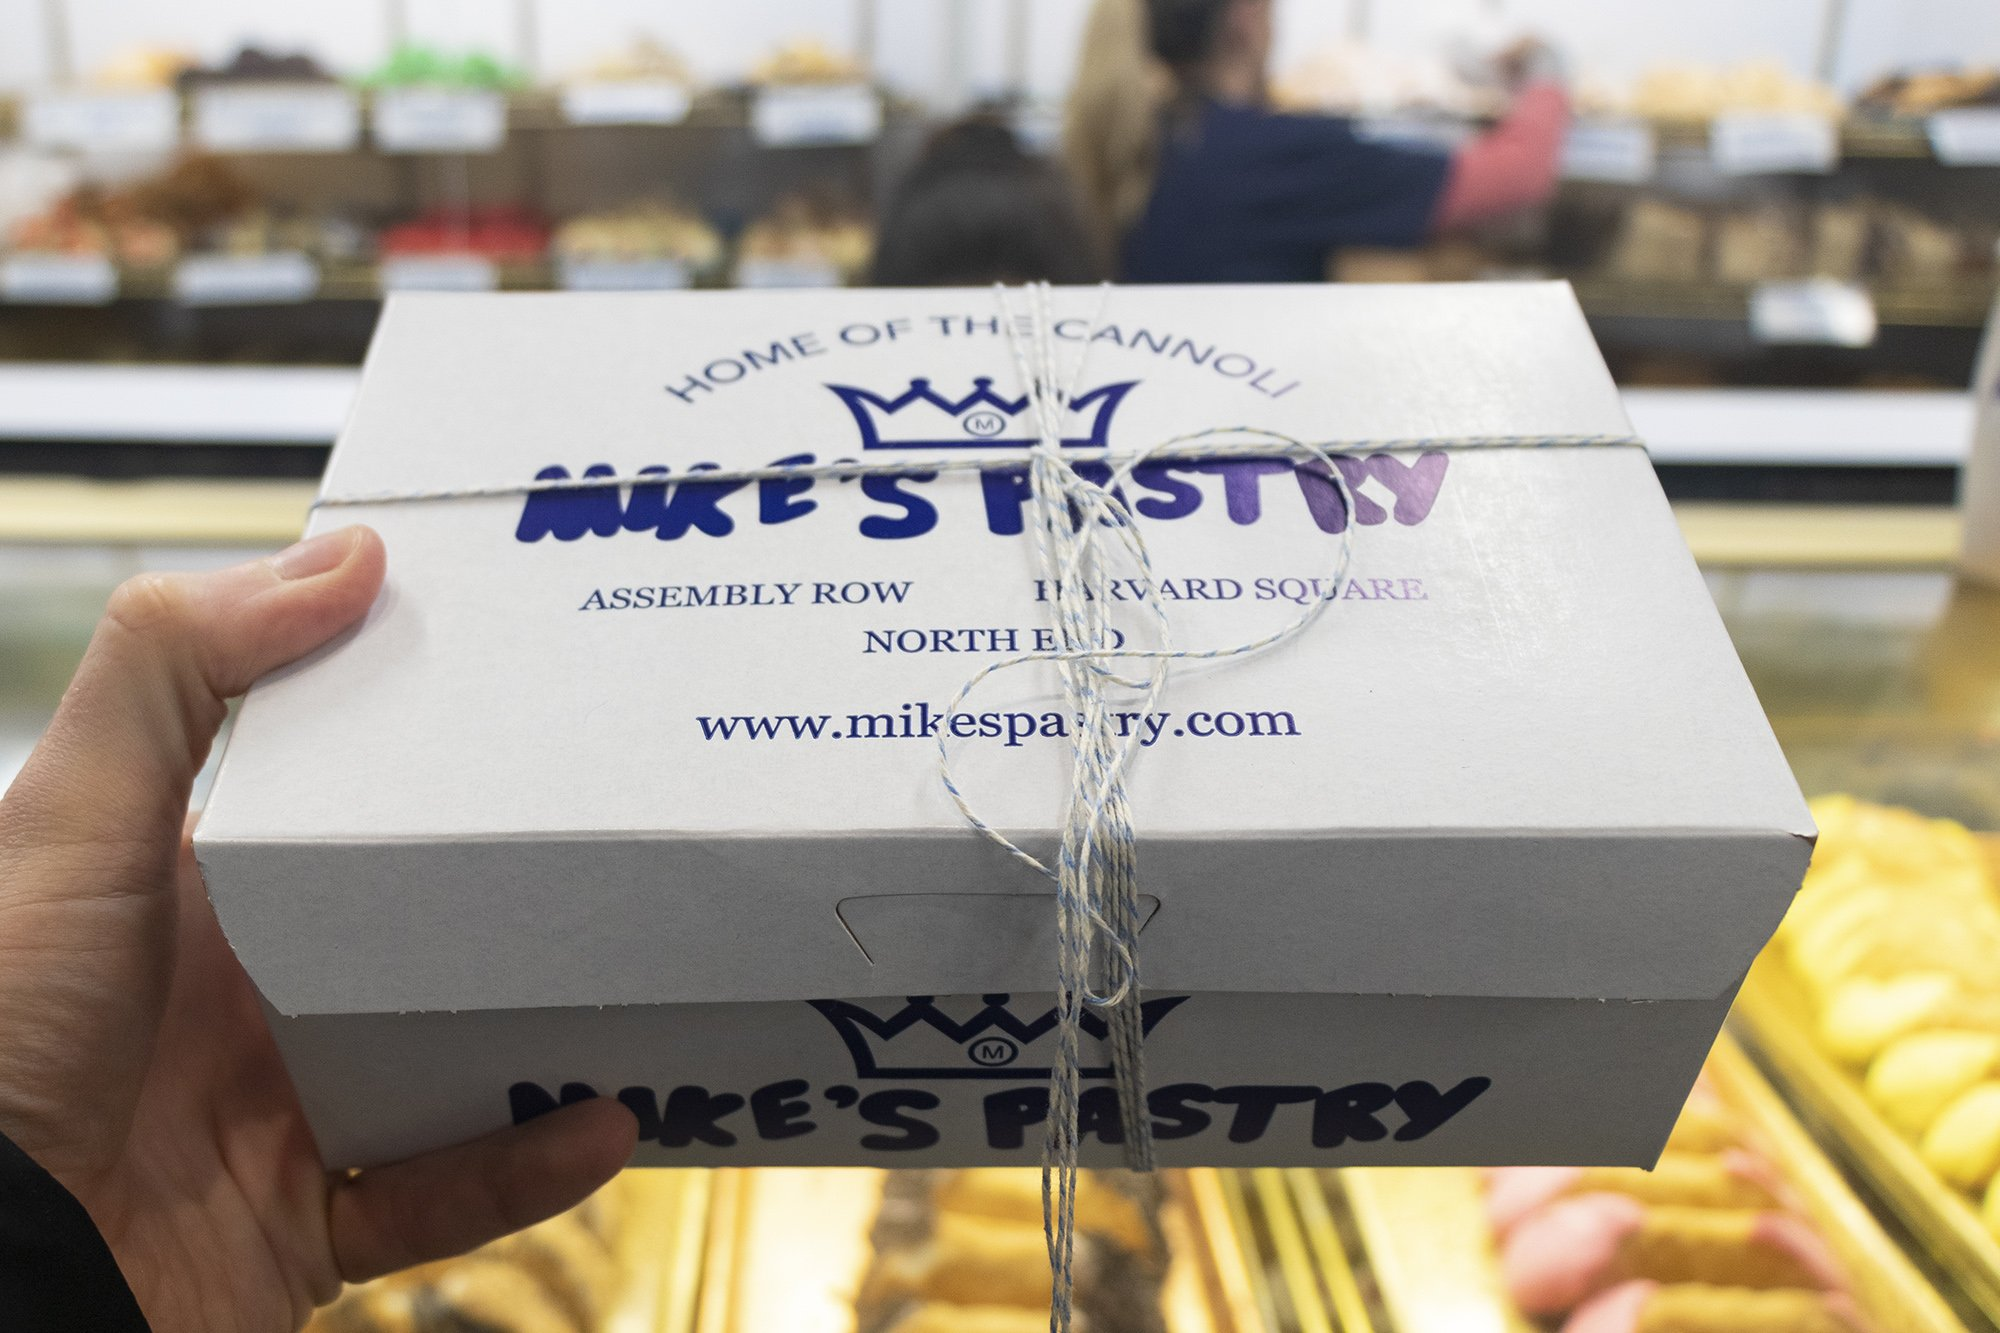 Mike's Pastry, Boston box